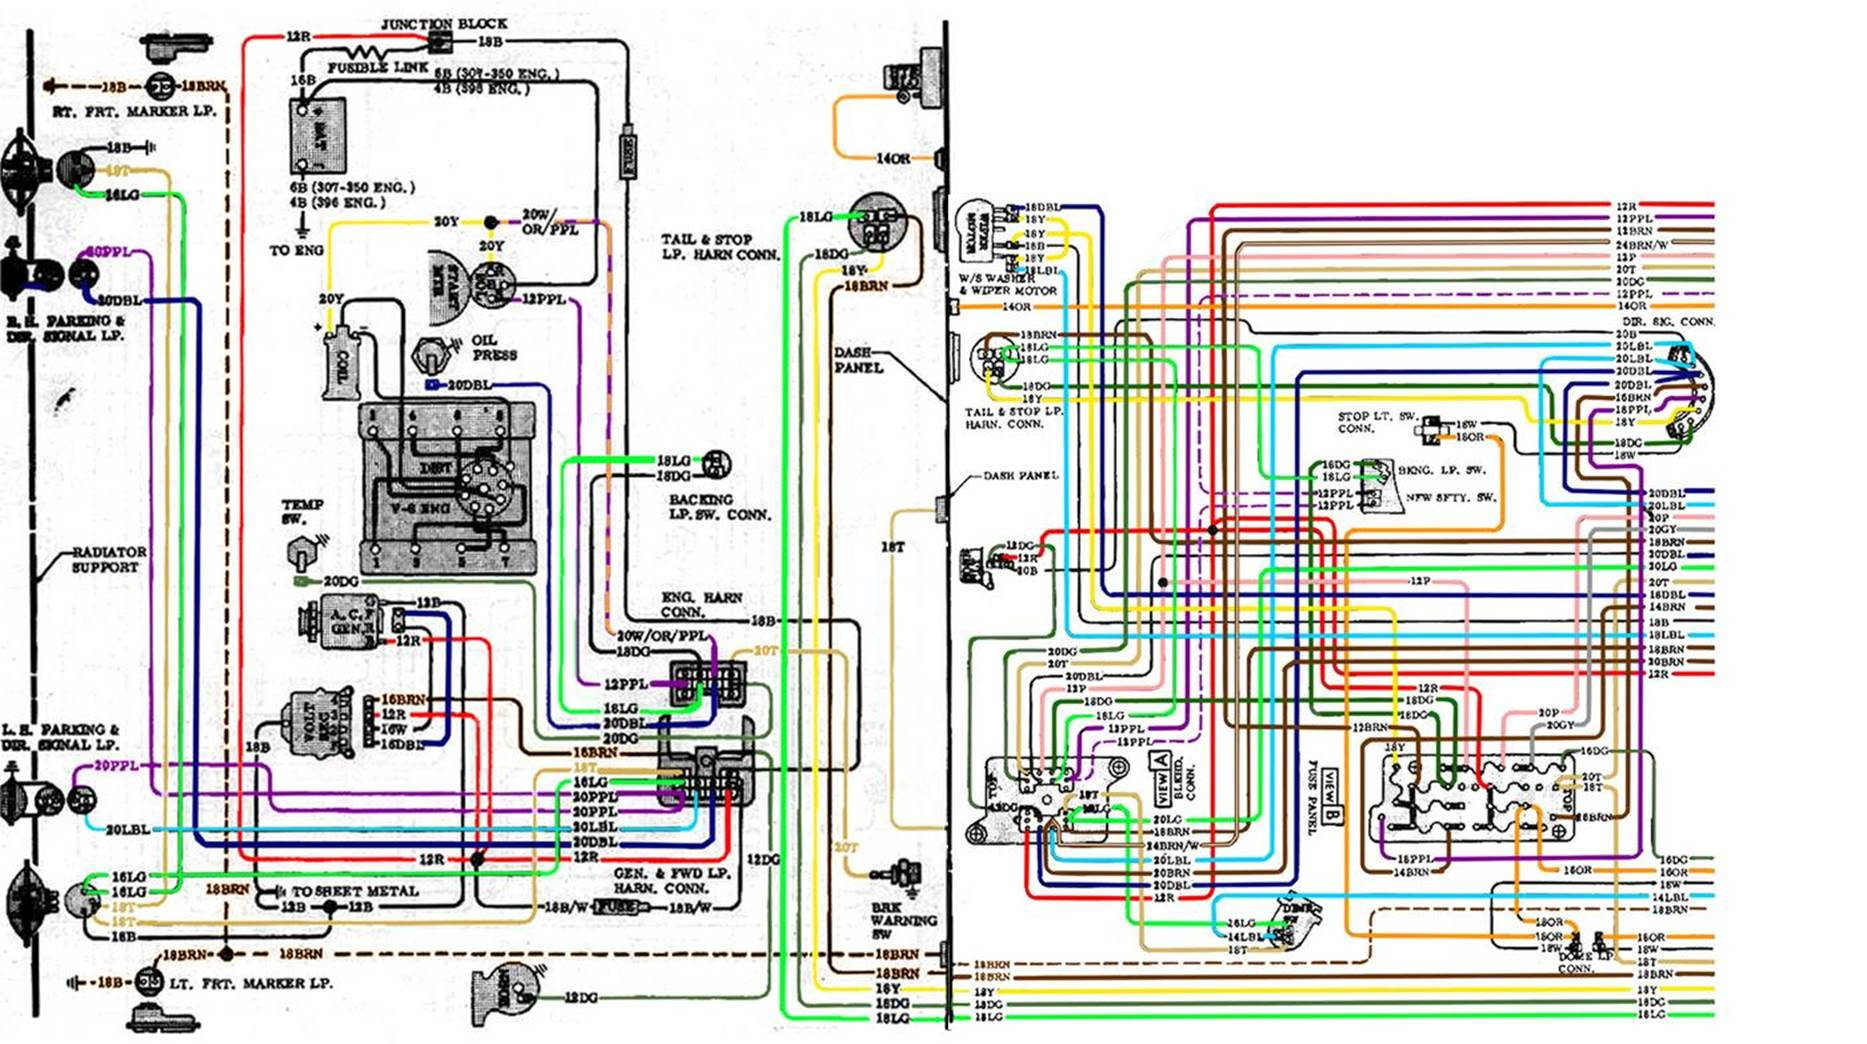 image002 gm wiring diagrams gm wiring diagrams online \u2022 wiring diagrams j Ford 4600 Wiring Schematic at nearapp.co